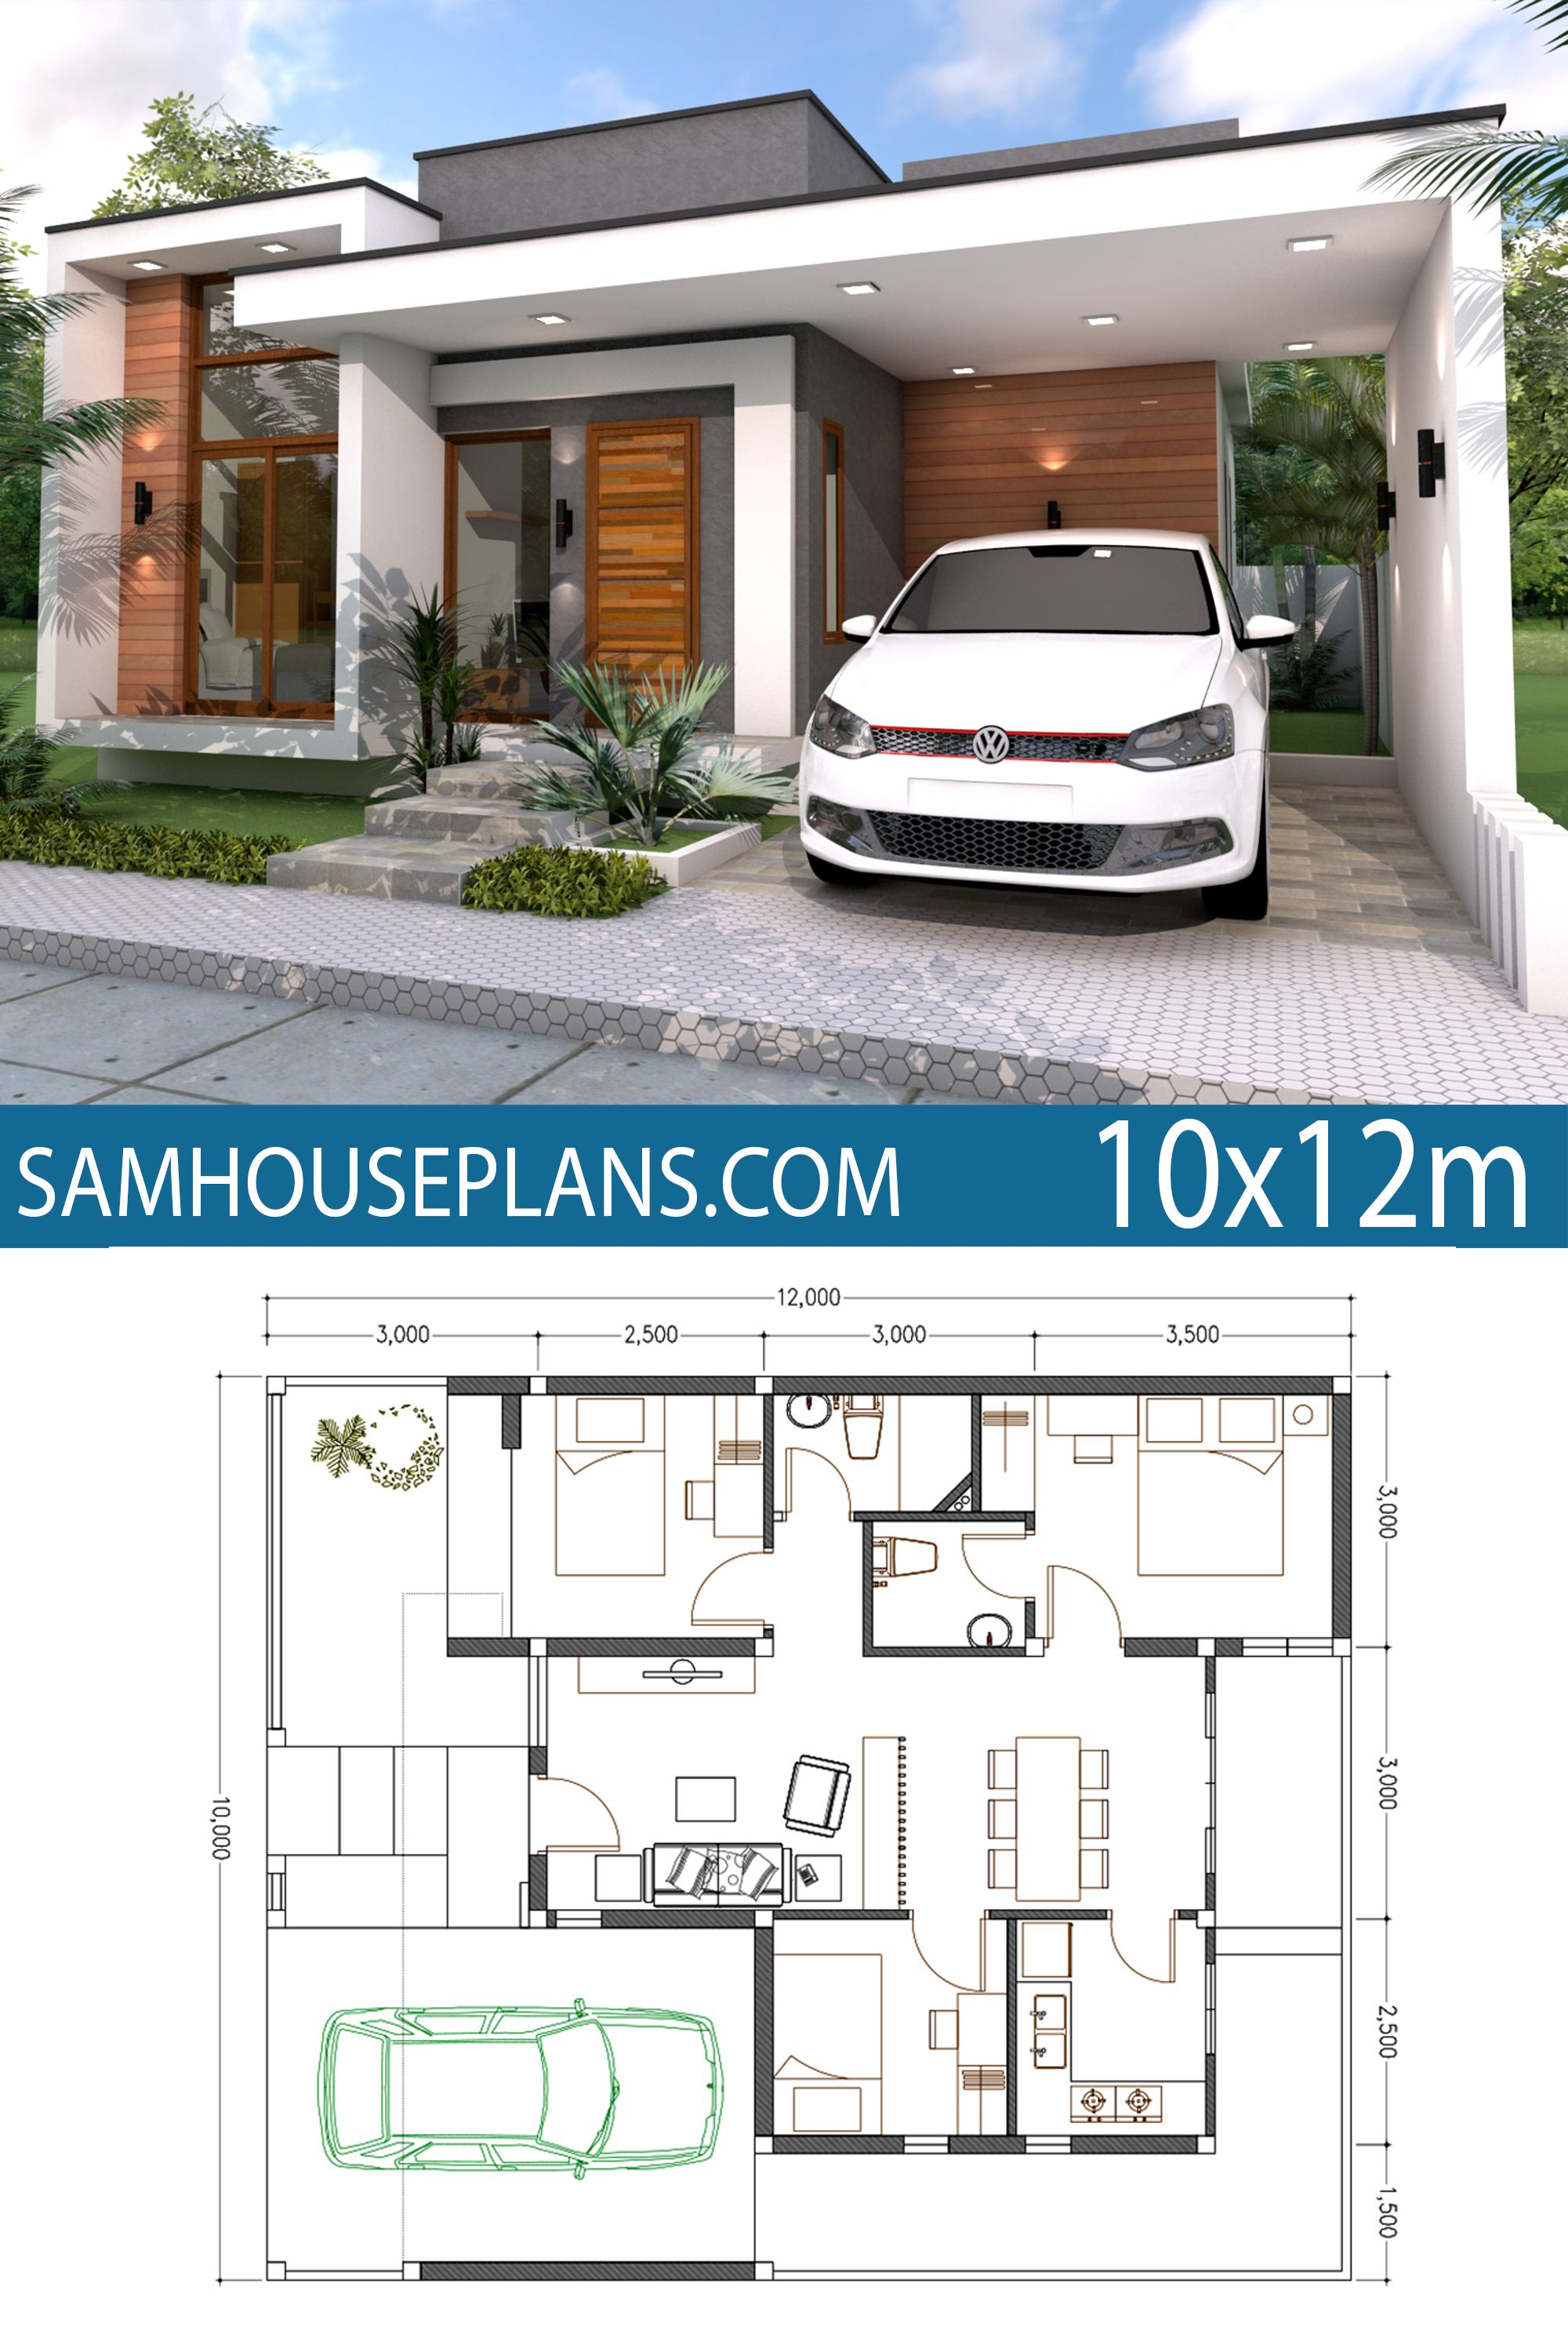 Home Plan 10x12m 3 Bedrooms House Plans Free Downloads Model House Plan Contemporary House Plans Small House Design Plans